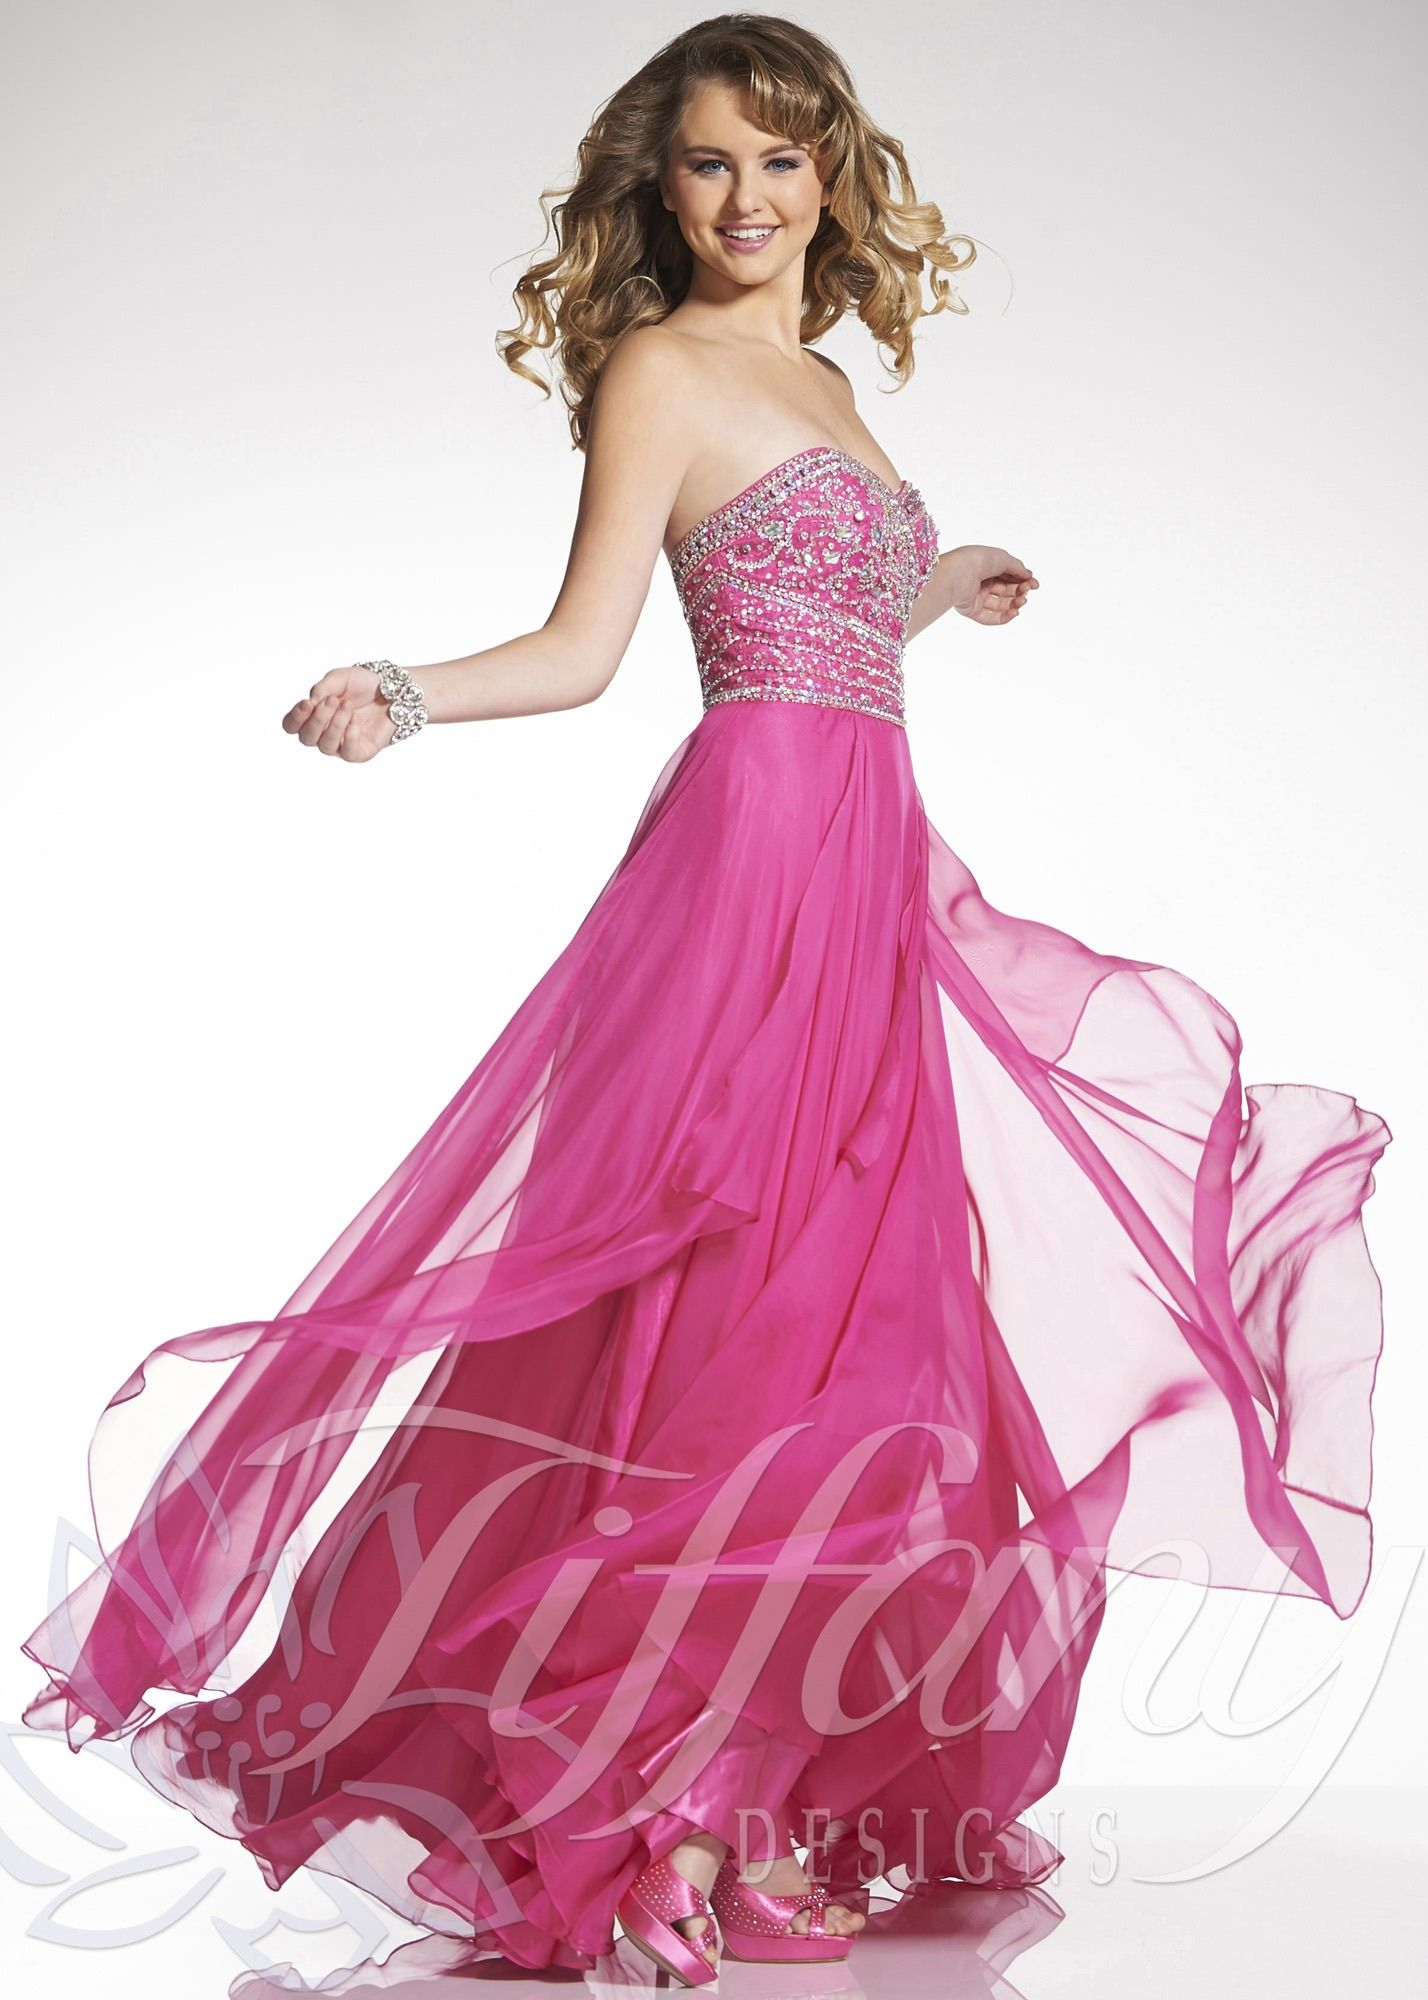 Tiffany Designs 16046 Sweetheart Sequined Gown | Dresses | Pinterest